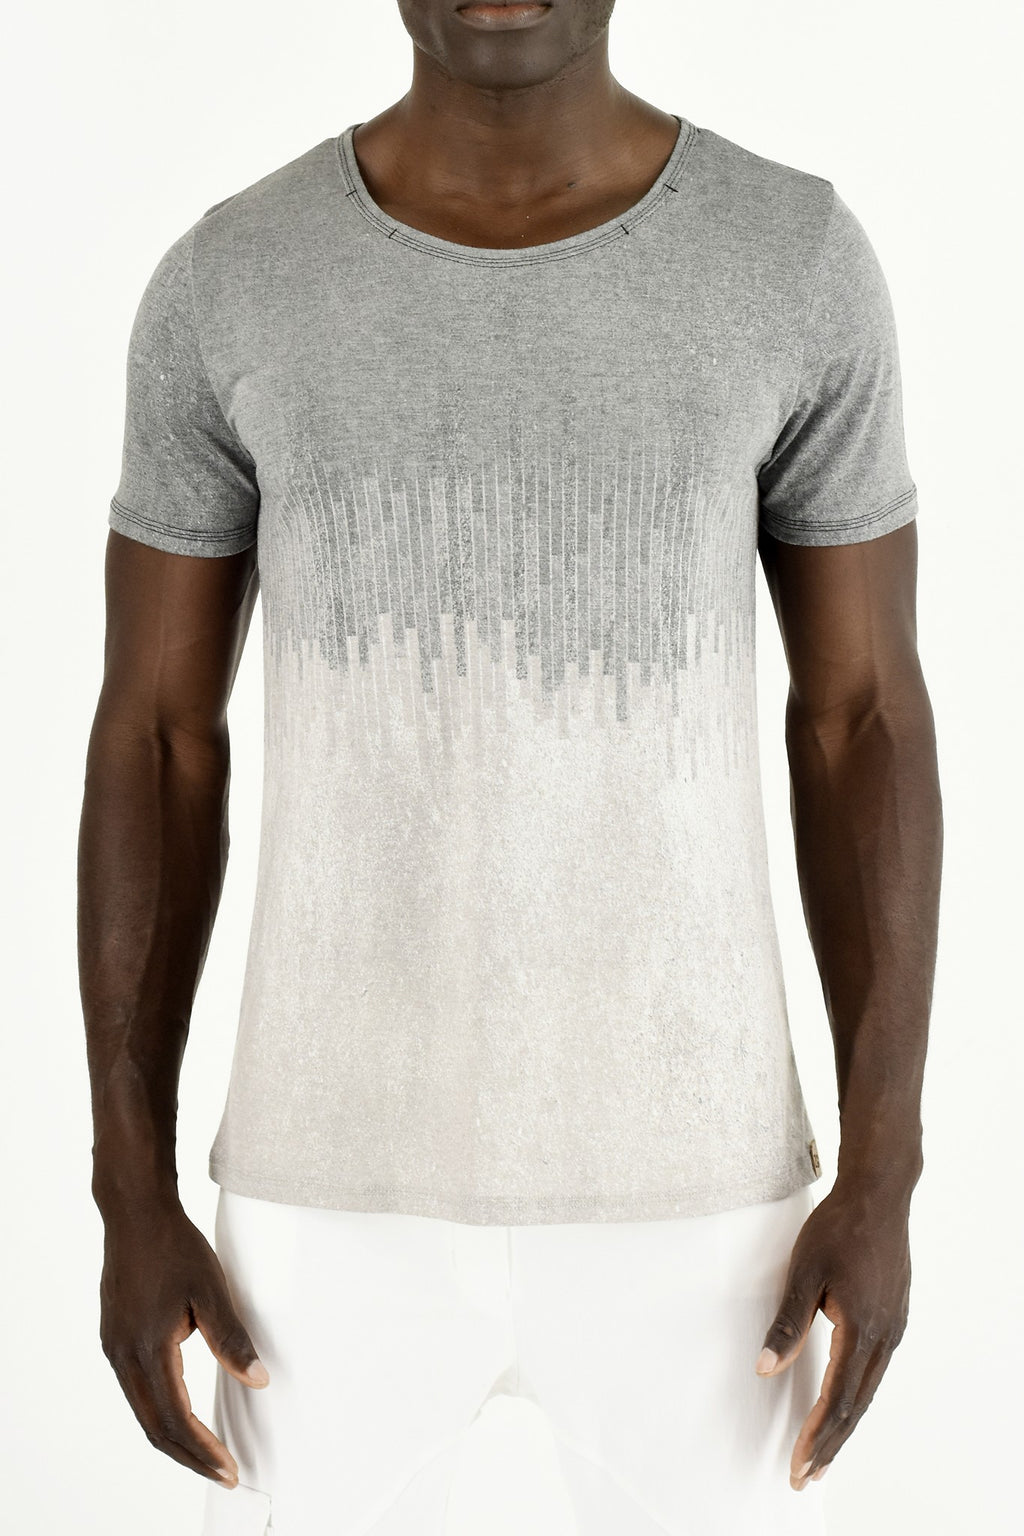 Mens City Print Greys T - Shirt ZG5291